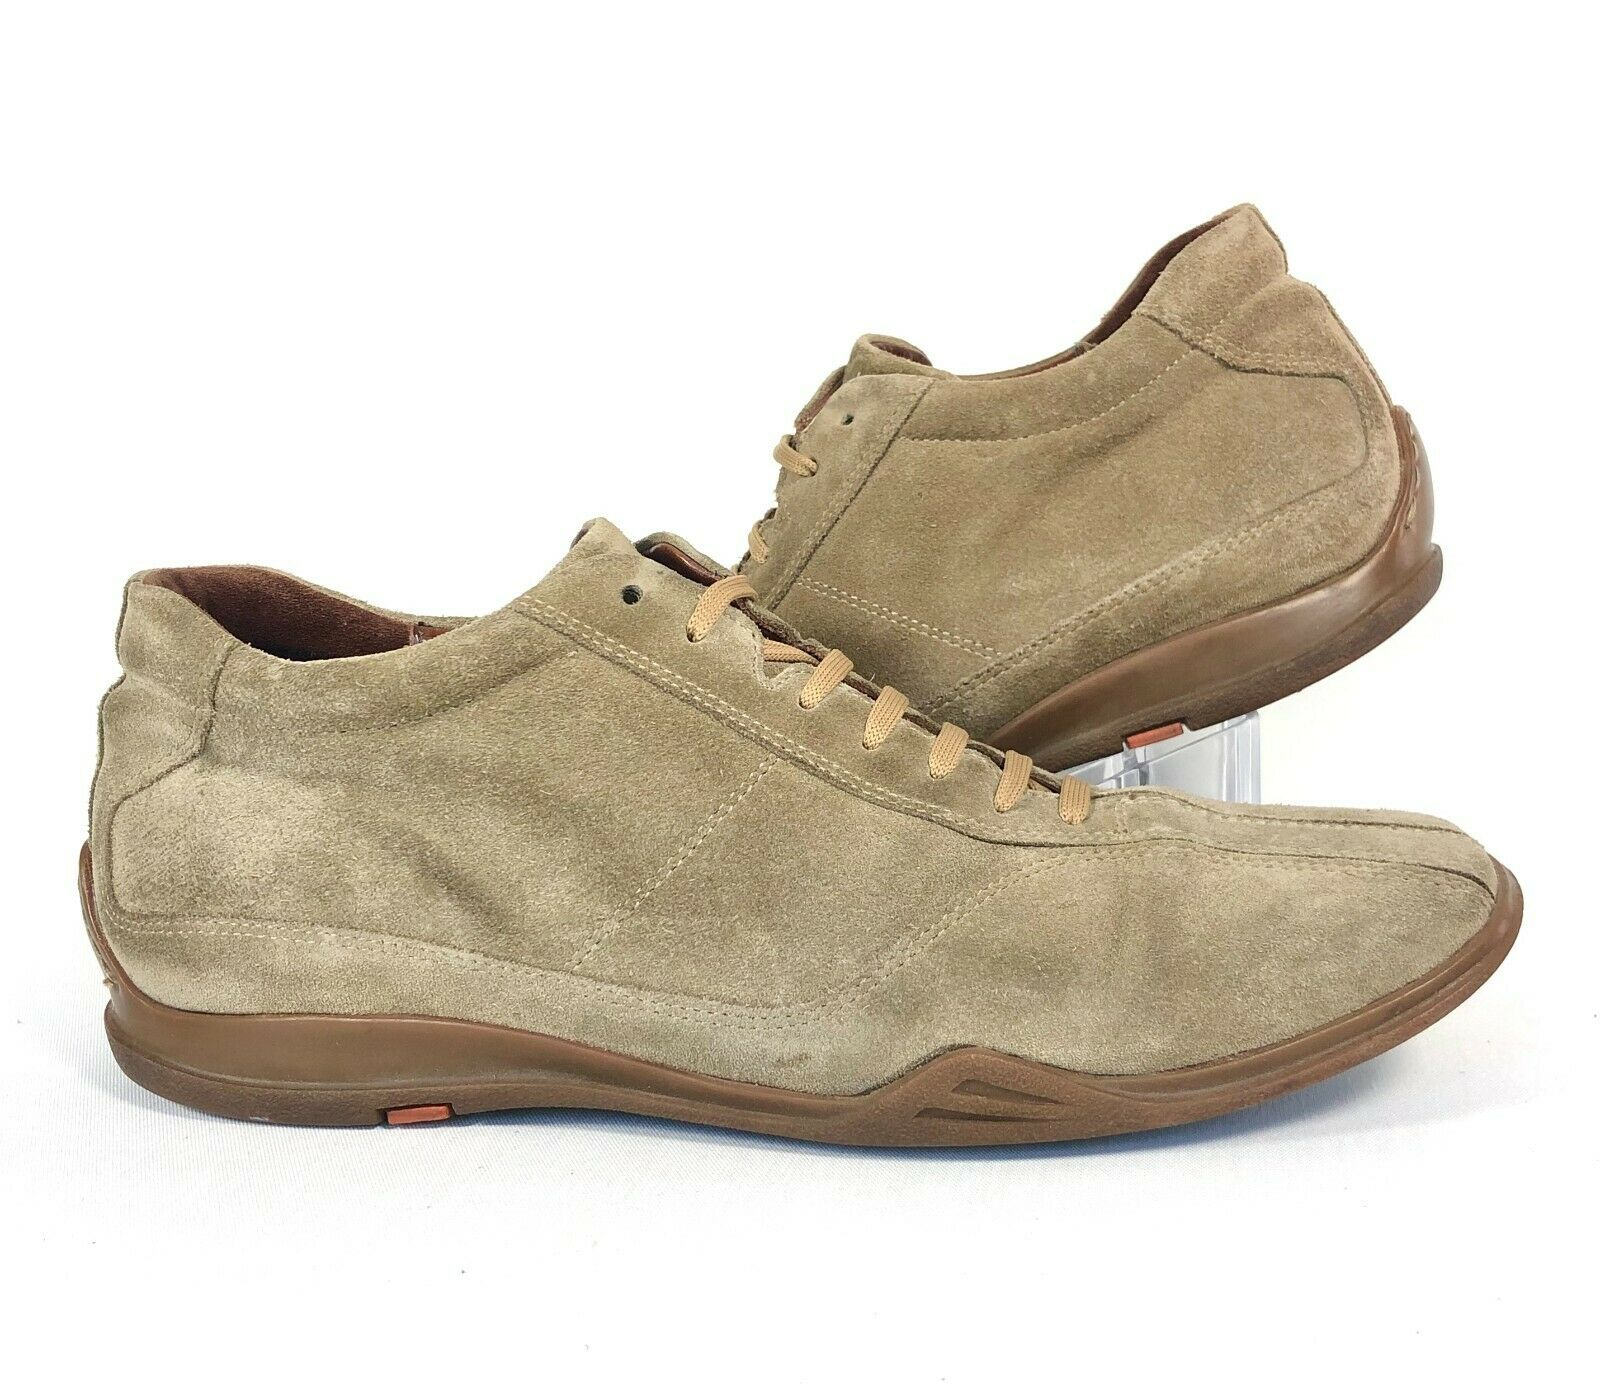 Barneys New York Mens Beige Tan Suede Leather Casual Walking Shoes Size 8.5 Mens